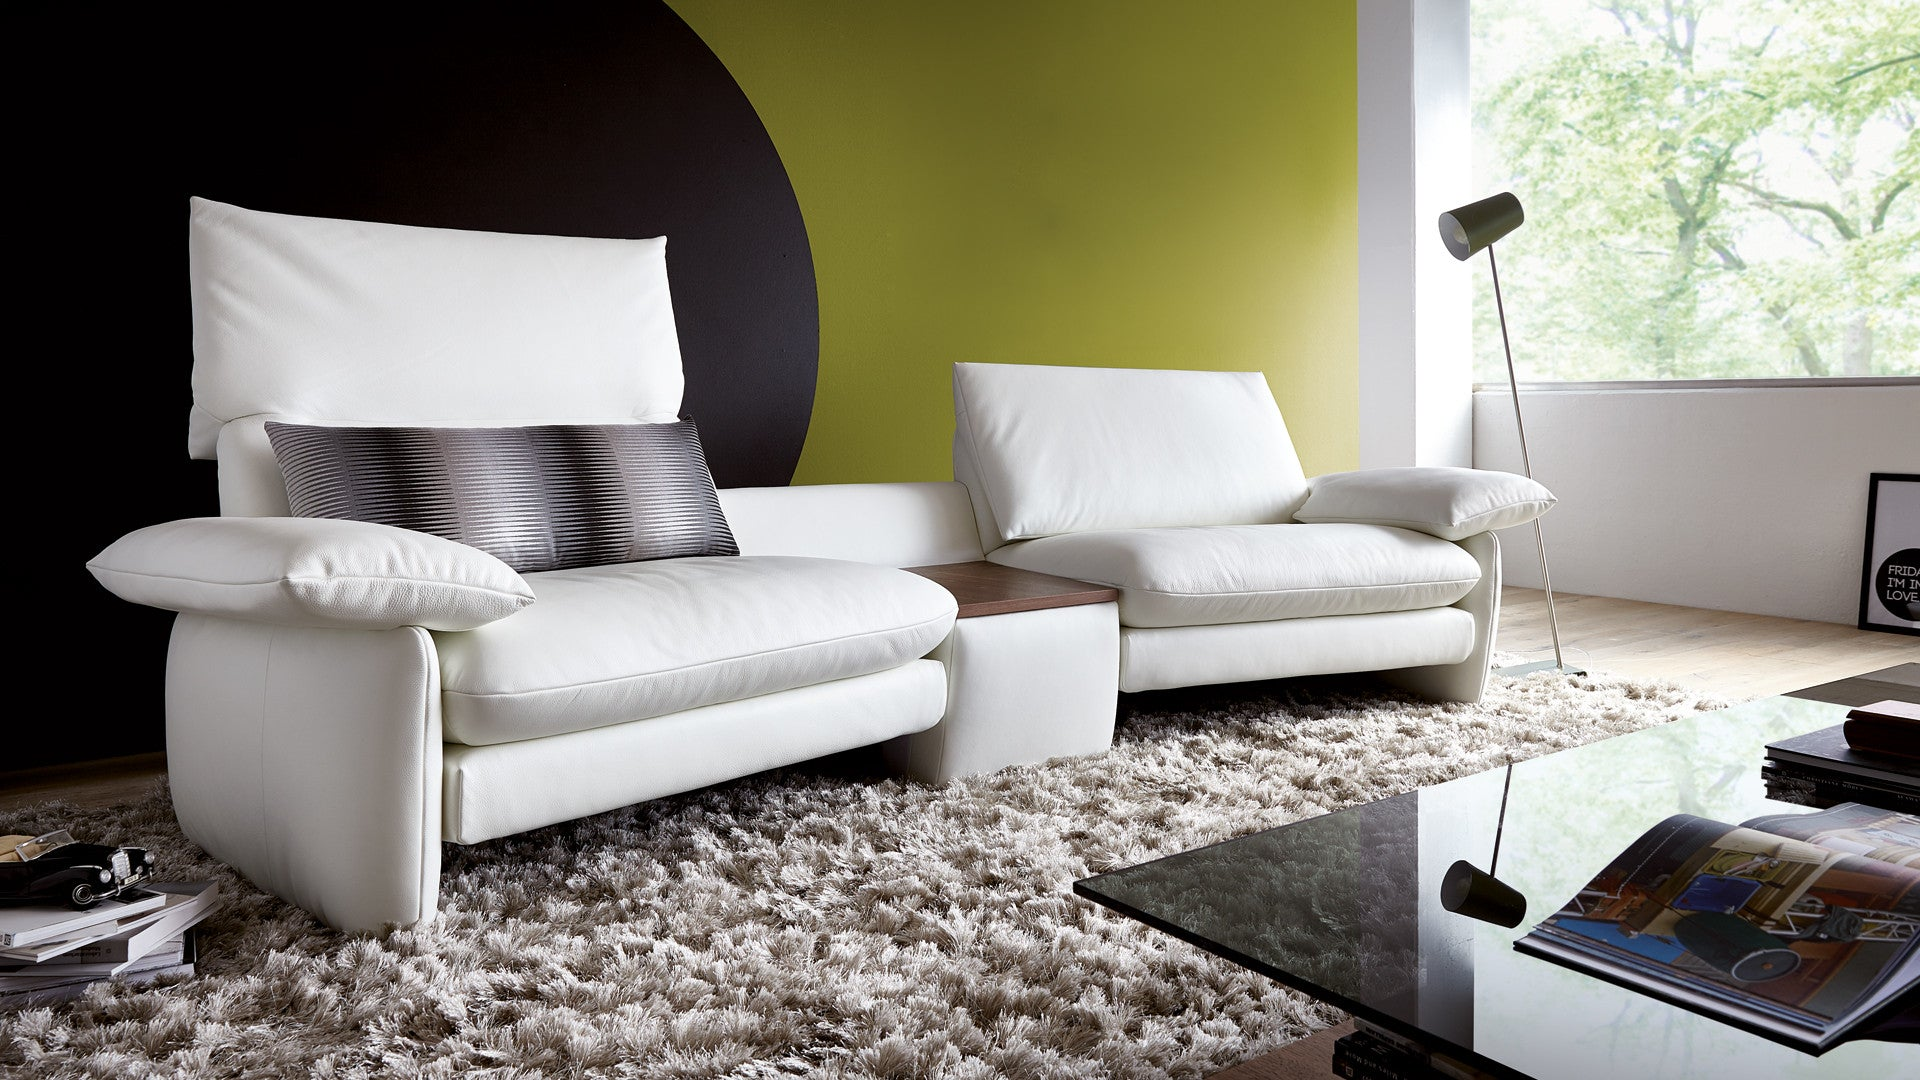 Koinor cosima collection made in germany